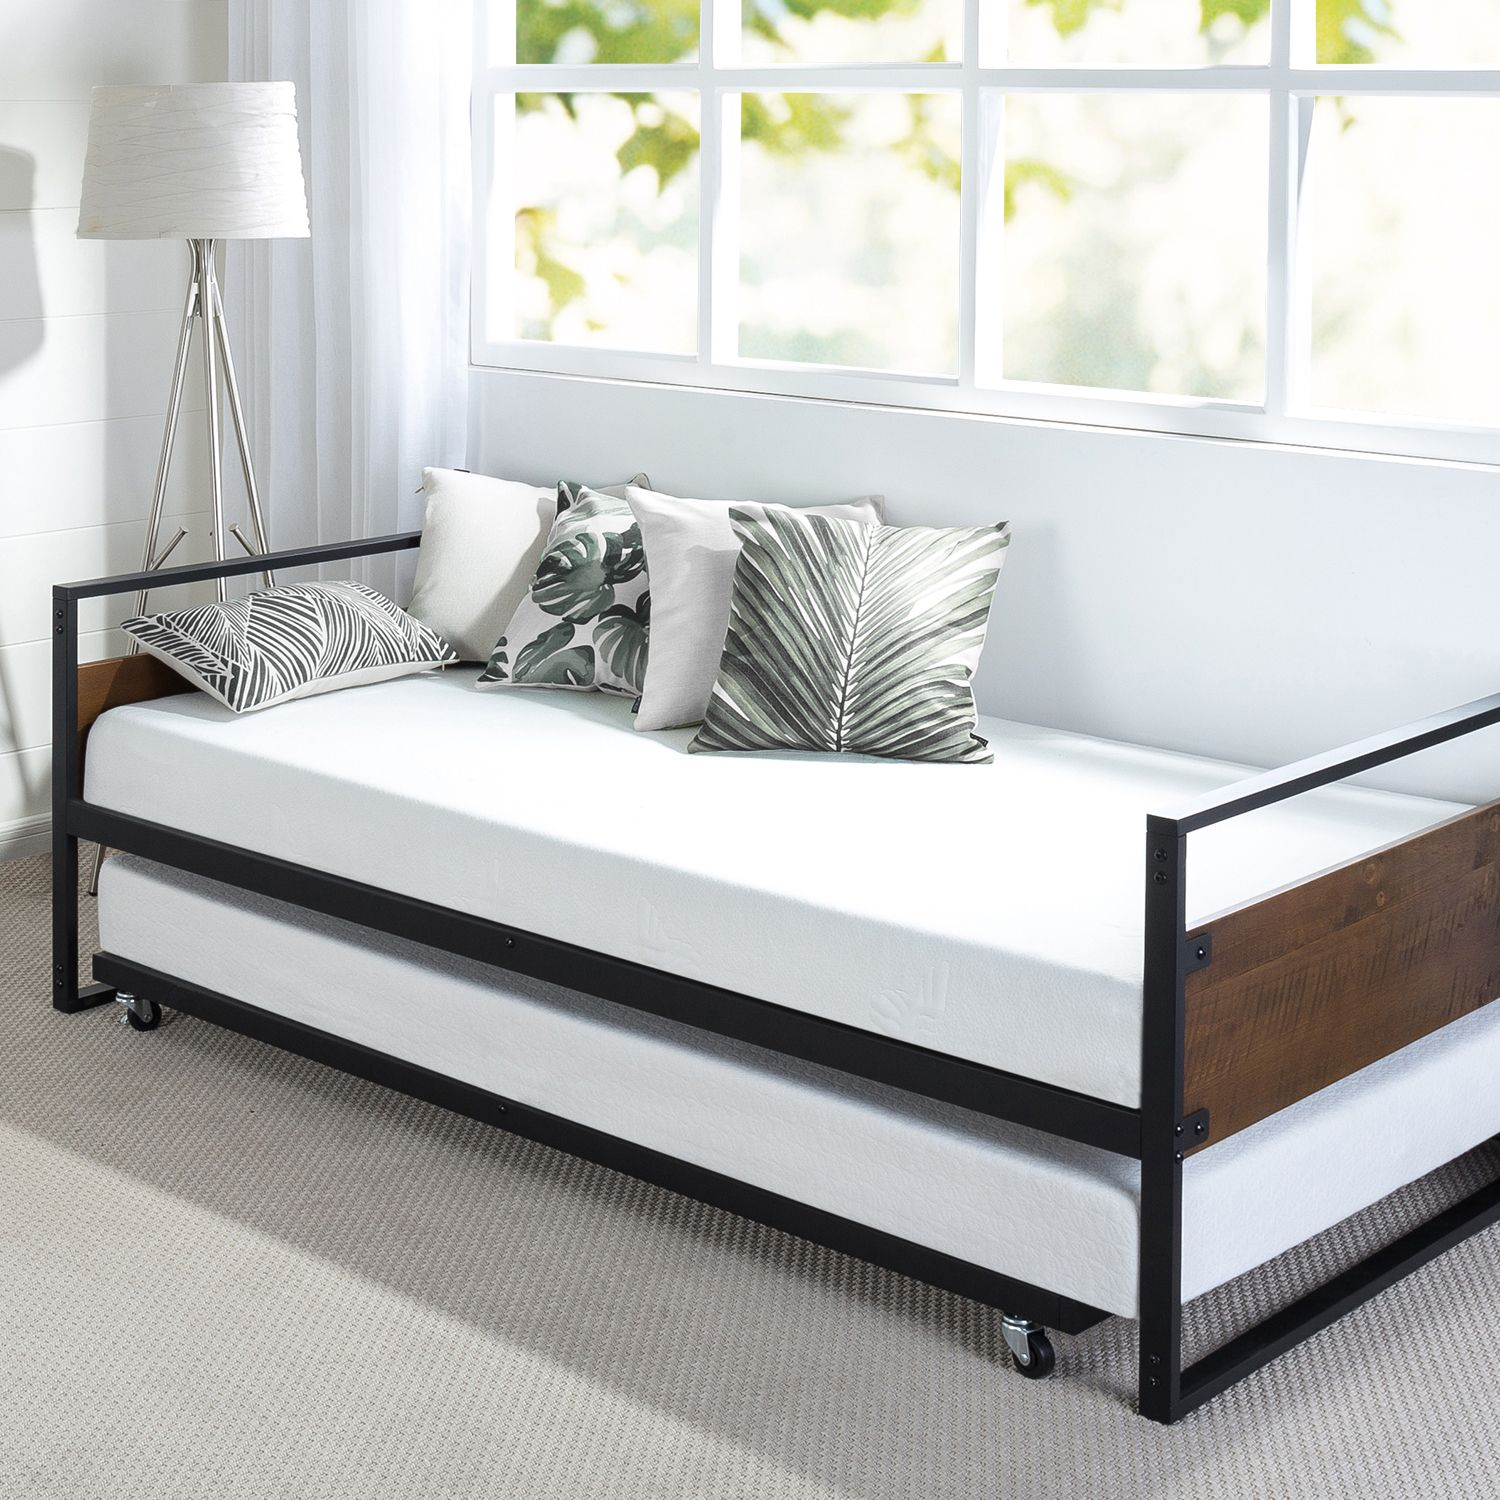 Home Twin Mattress Size Trundle Bed Trundle Bed Frame